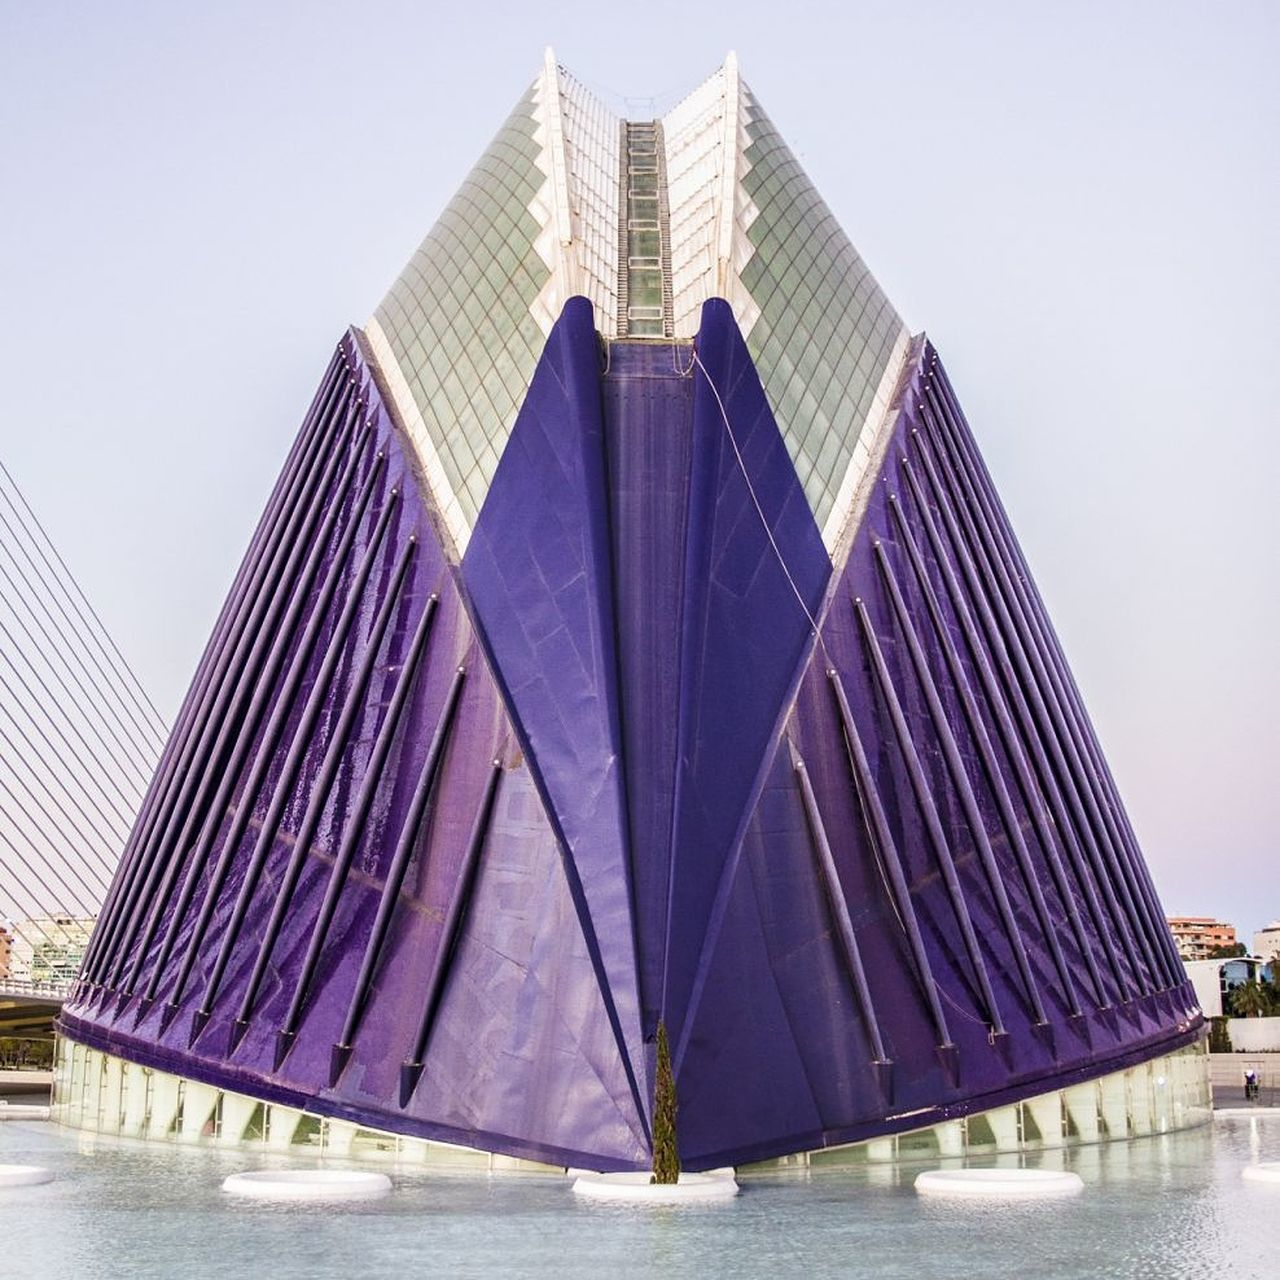 Architecture Modern Built Structure No People Outdoors Futuristic Day Urban Skyline Building Exterior València Futuristic Valencia, Spain Museum Architecture Water Purple Color Skyscraper City Sky